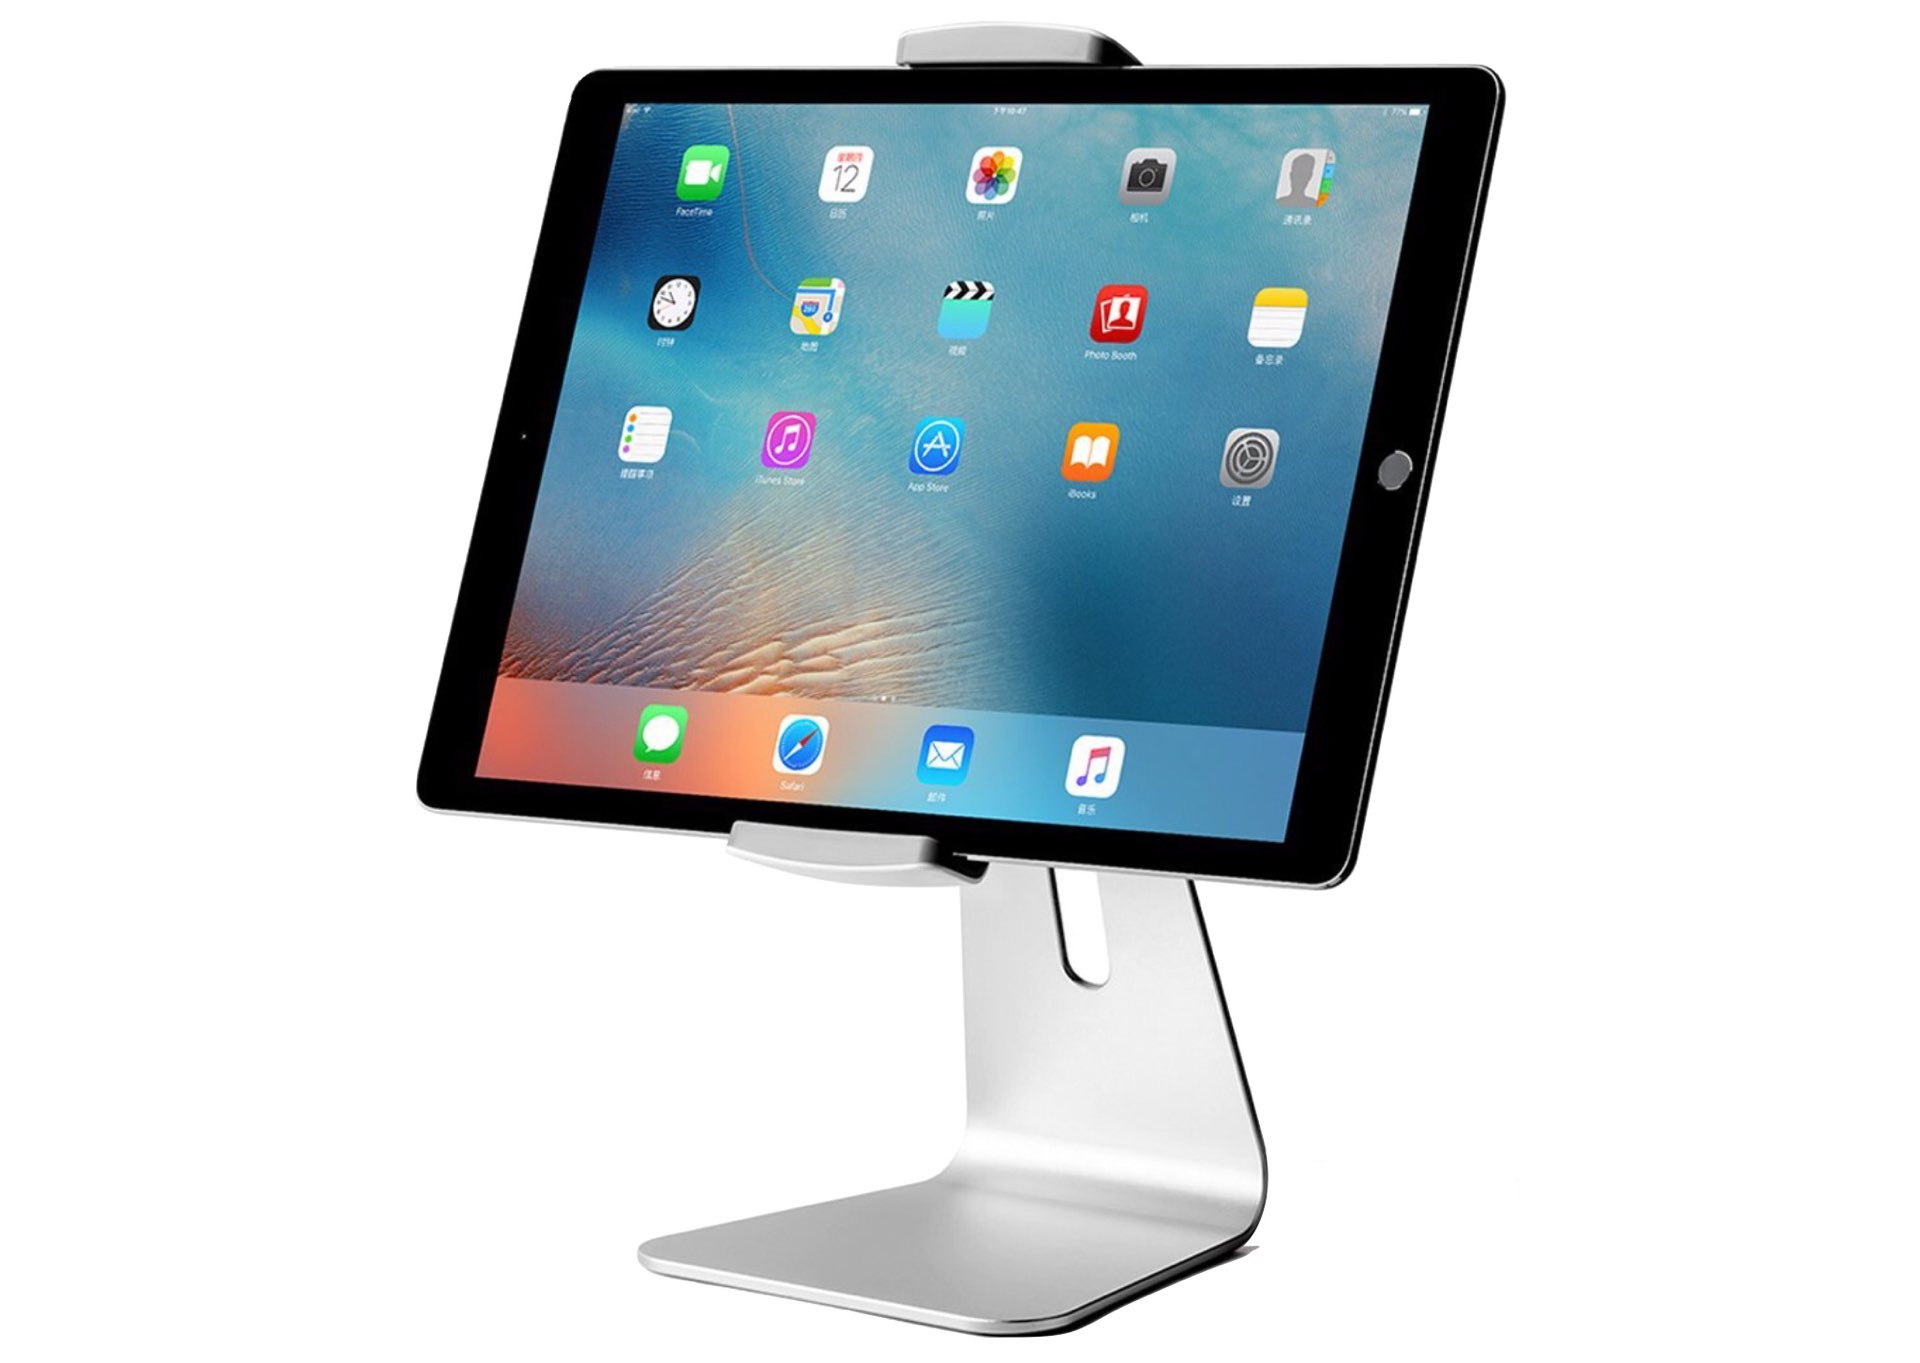 Viozon AP-7S tablet stand. ($40)